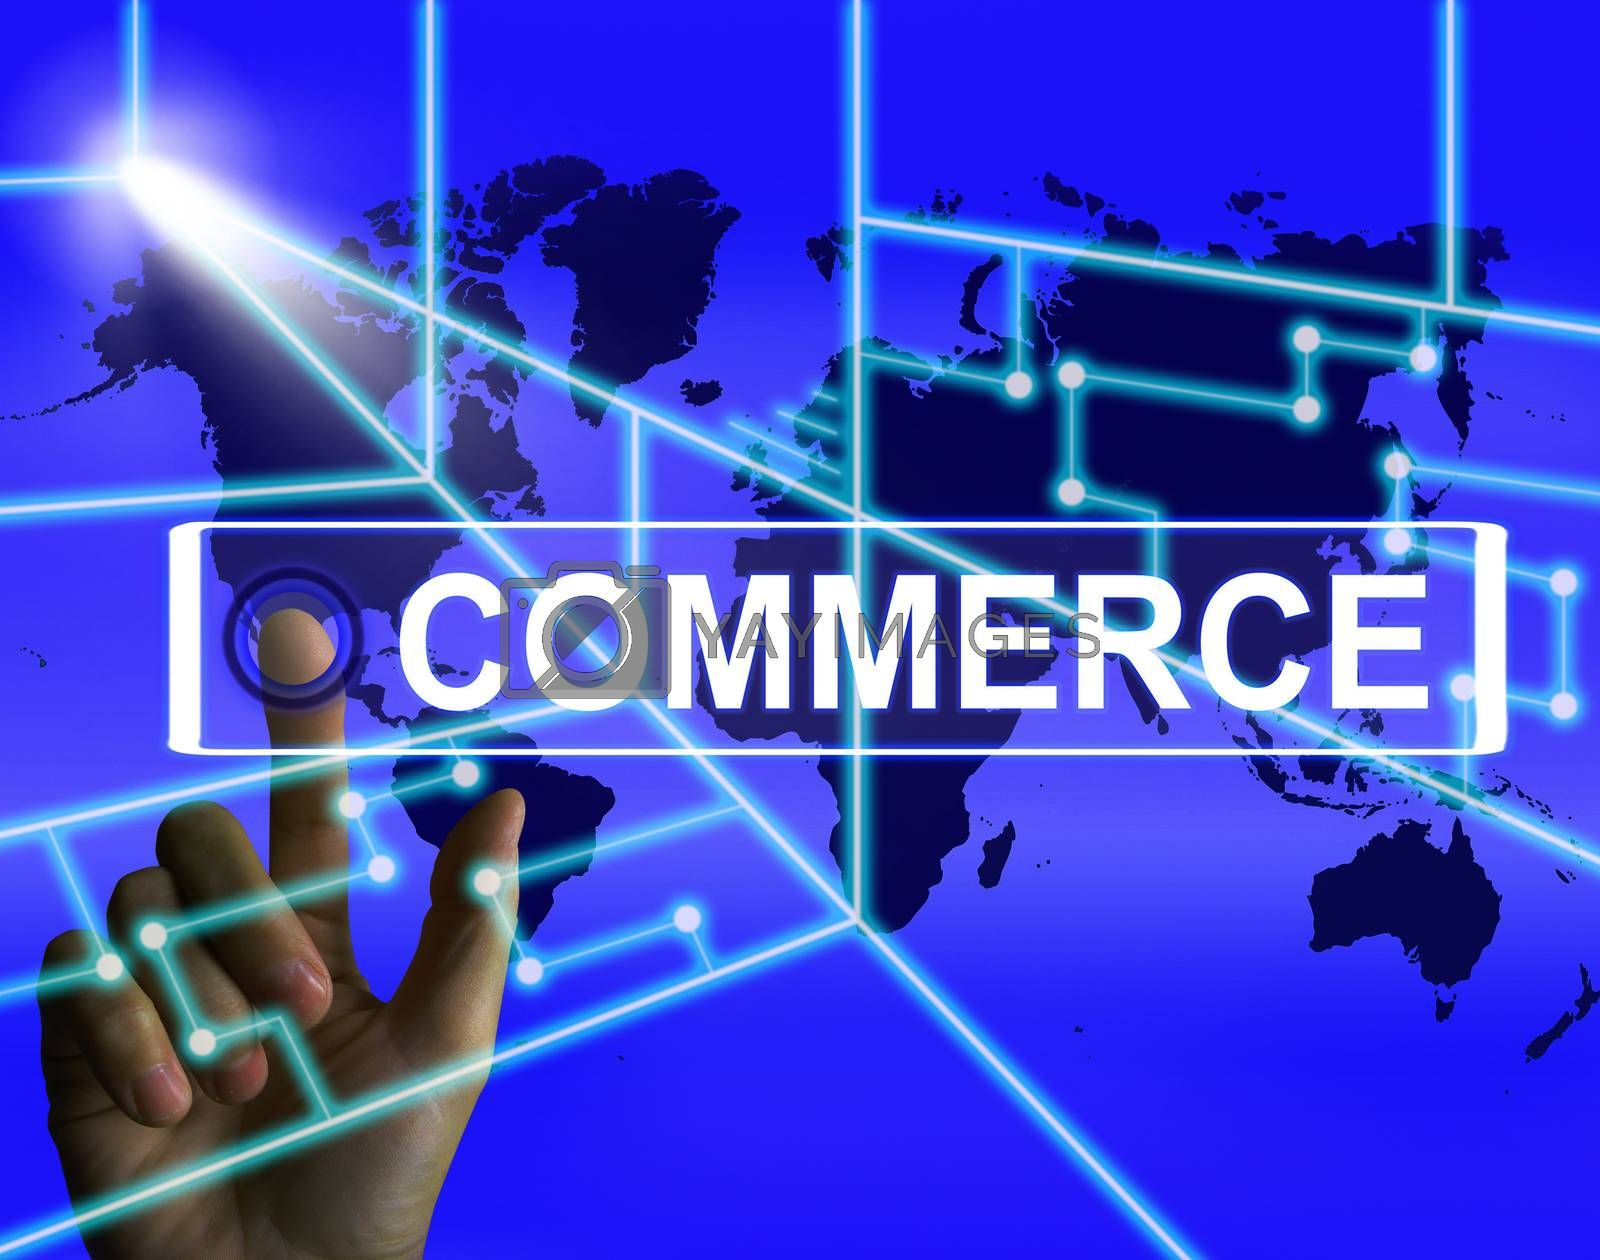 Commerce Screen Shows Worldwide Commercial and Financial Busines by stuartmiles